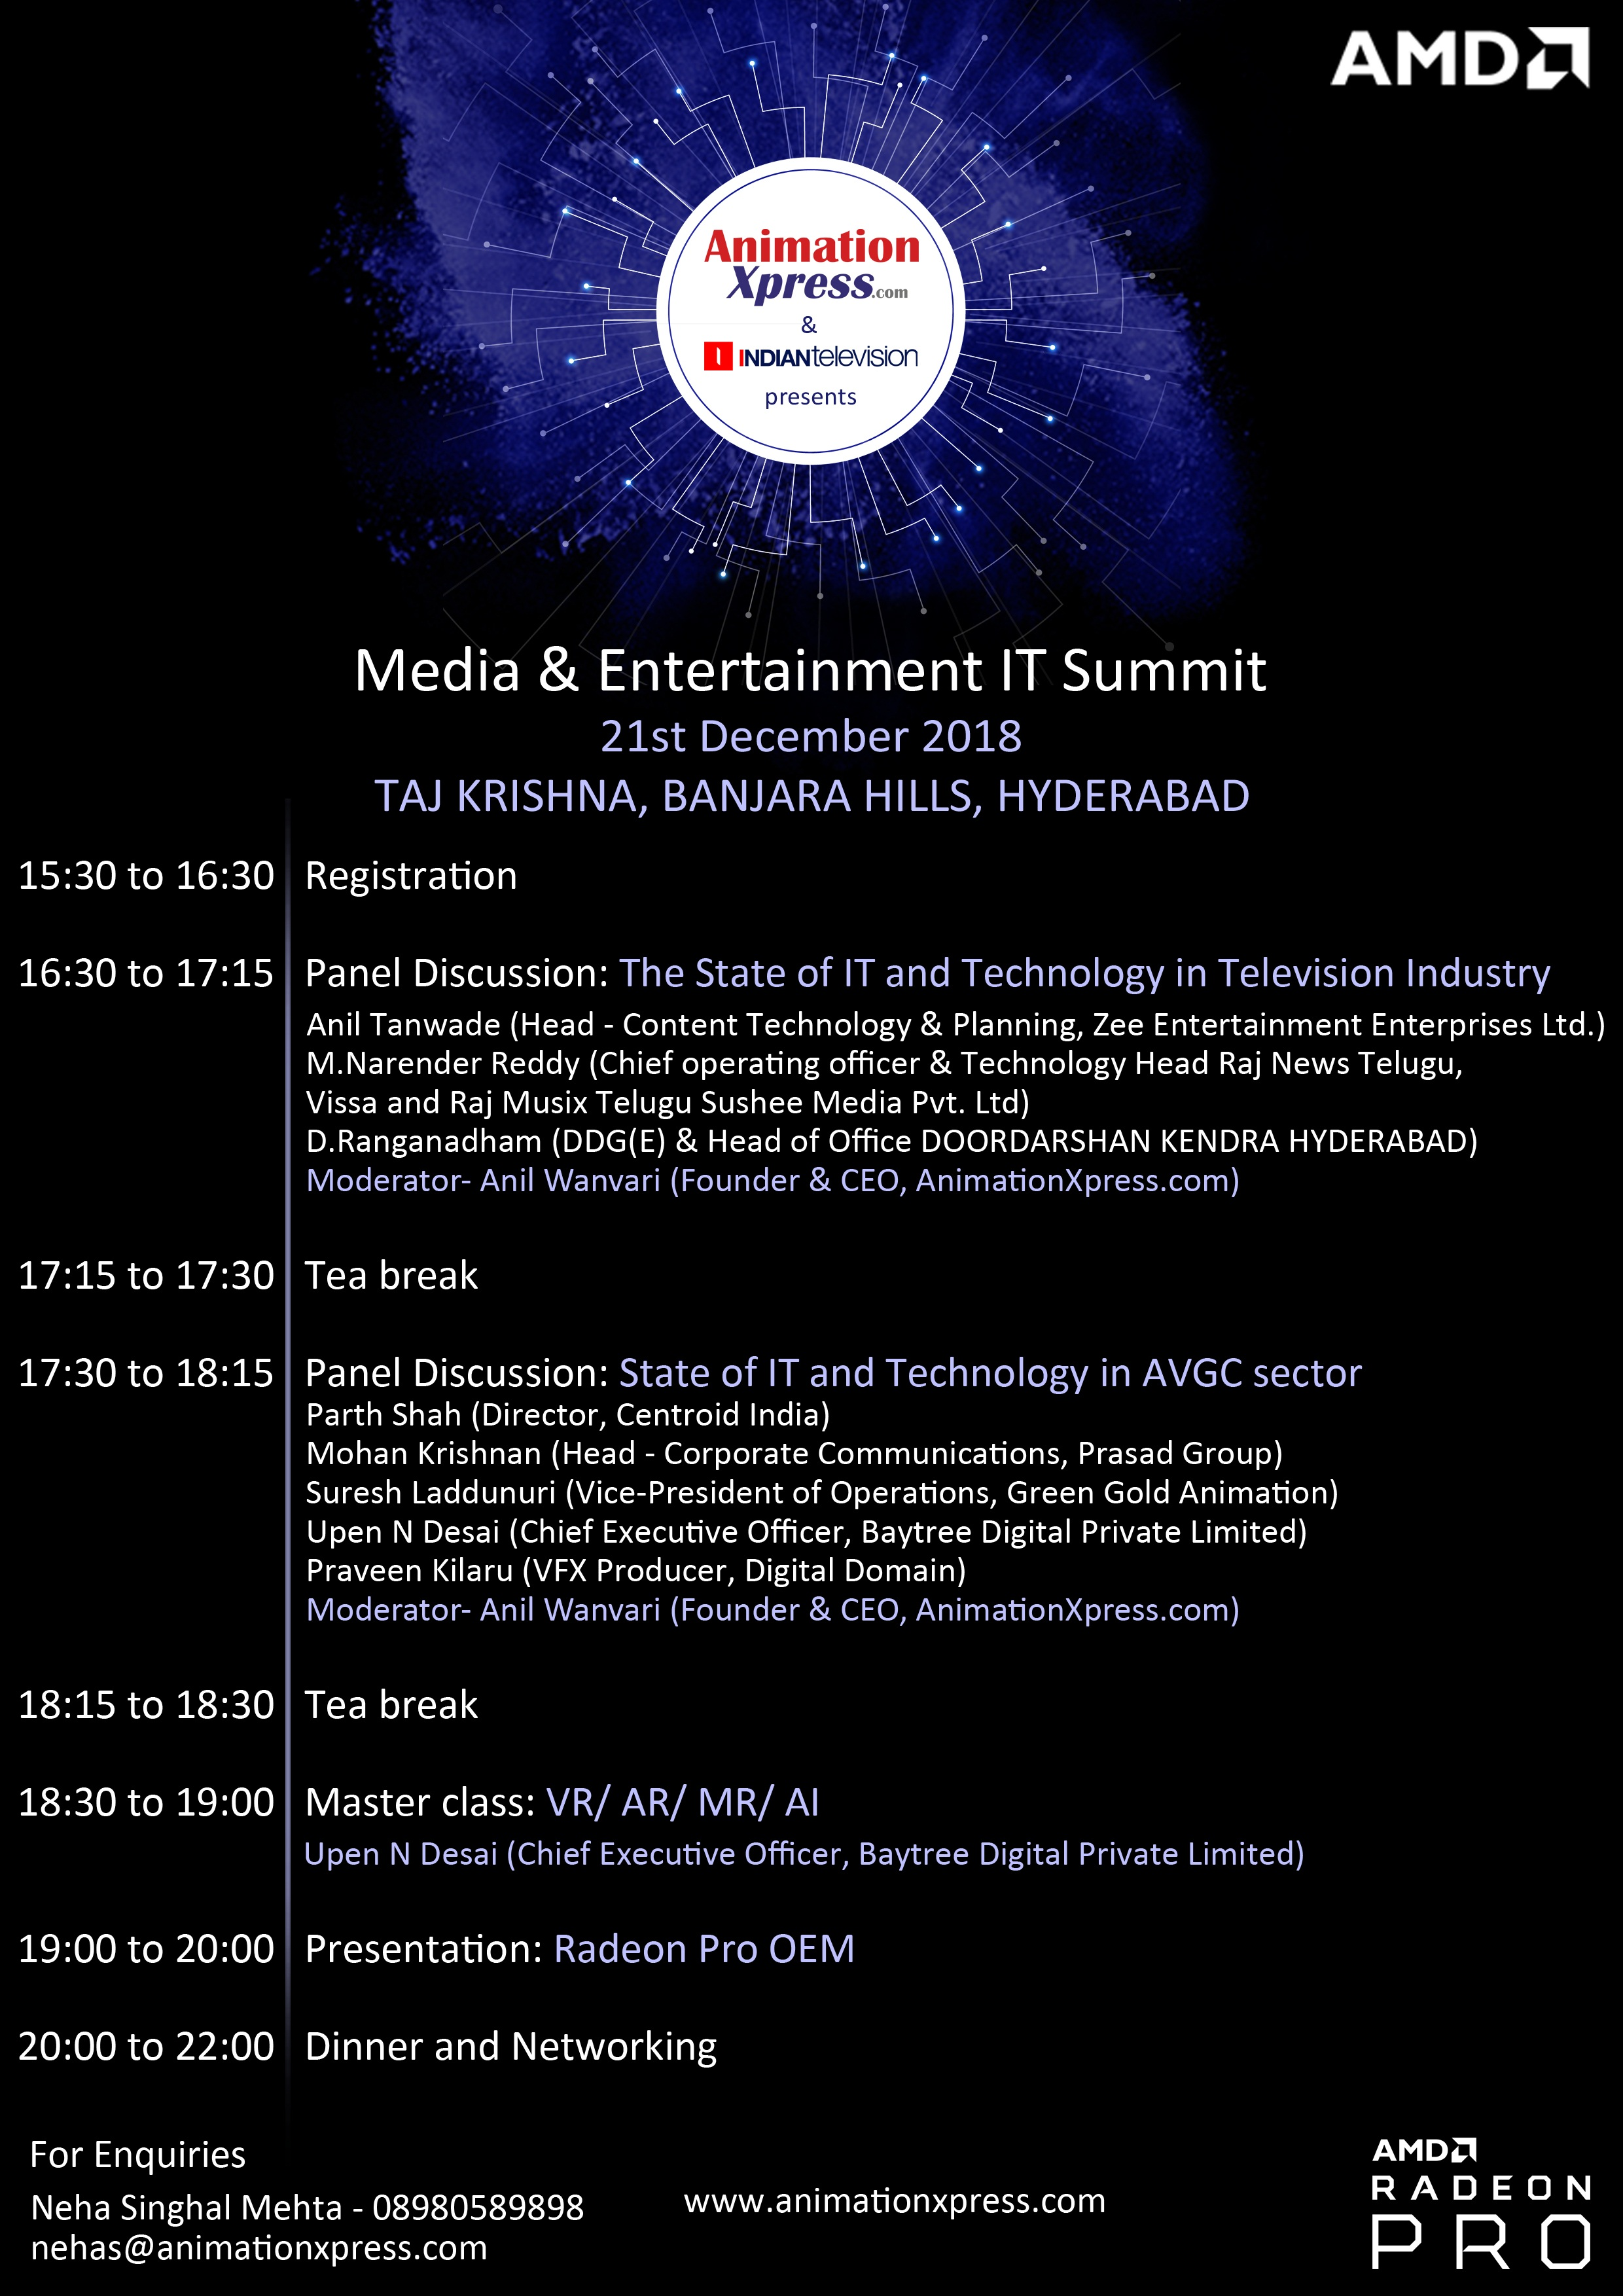 AnimationXpress announces Media & Entertainment IT Summit in